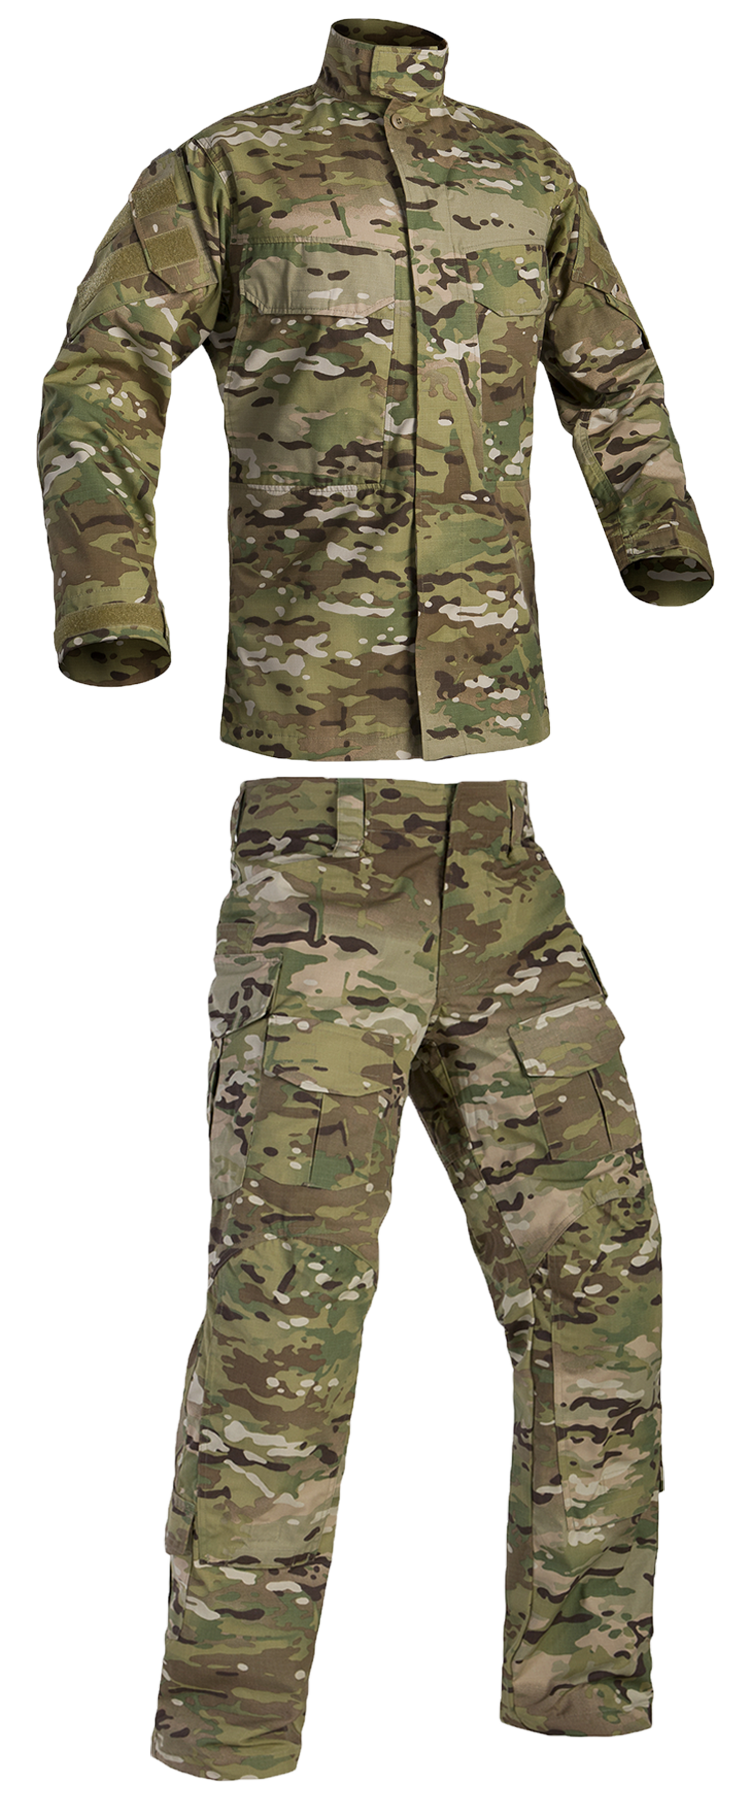 oakley racing jacket military pg3l  6 Things to Know about the DRIFIRE庐/Crye Precision FR Field Uniform